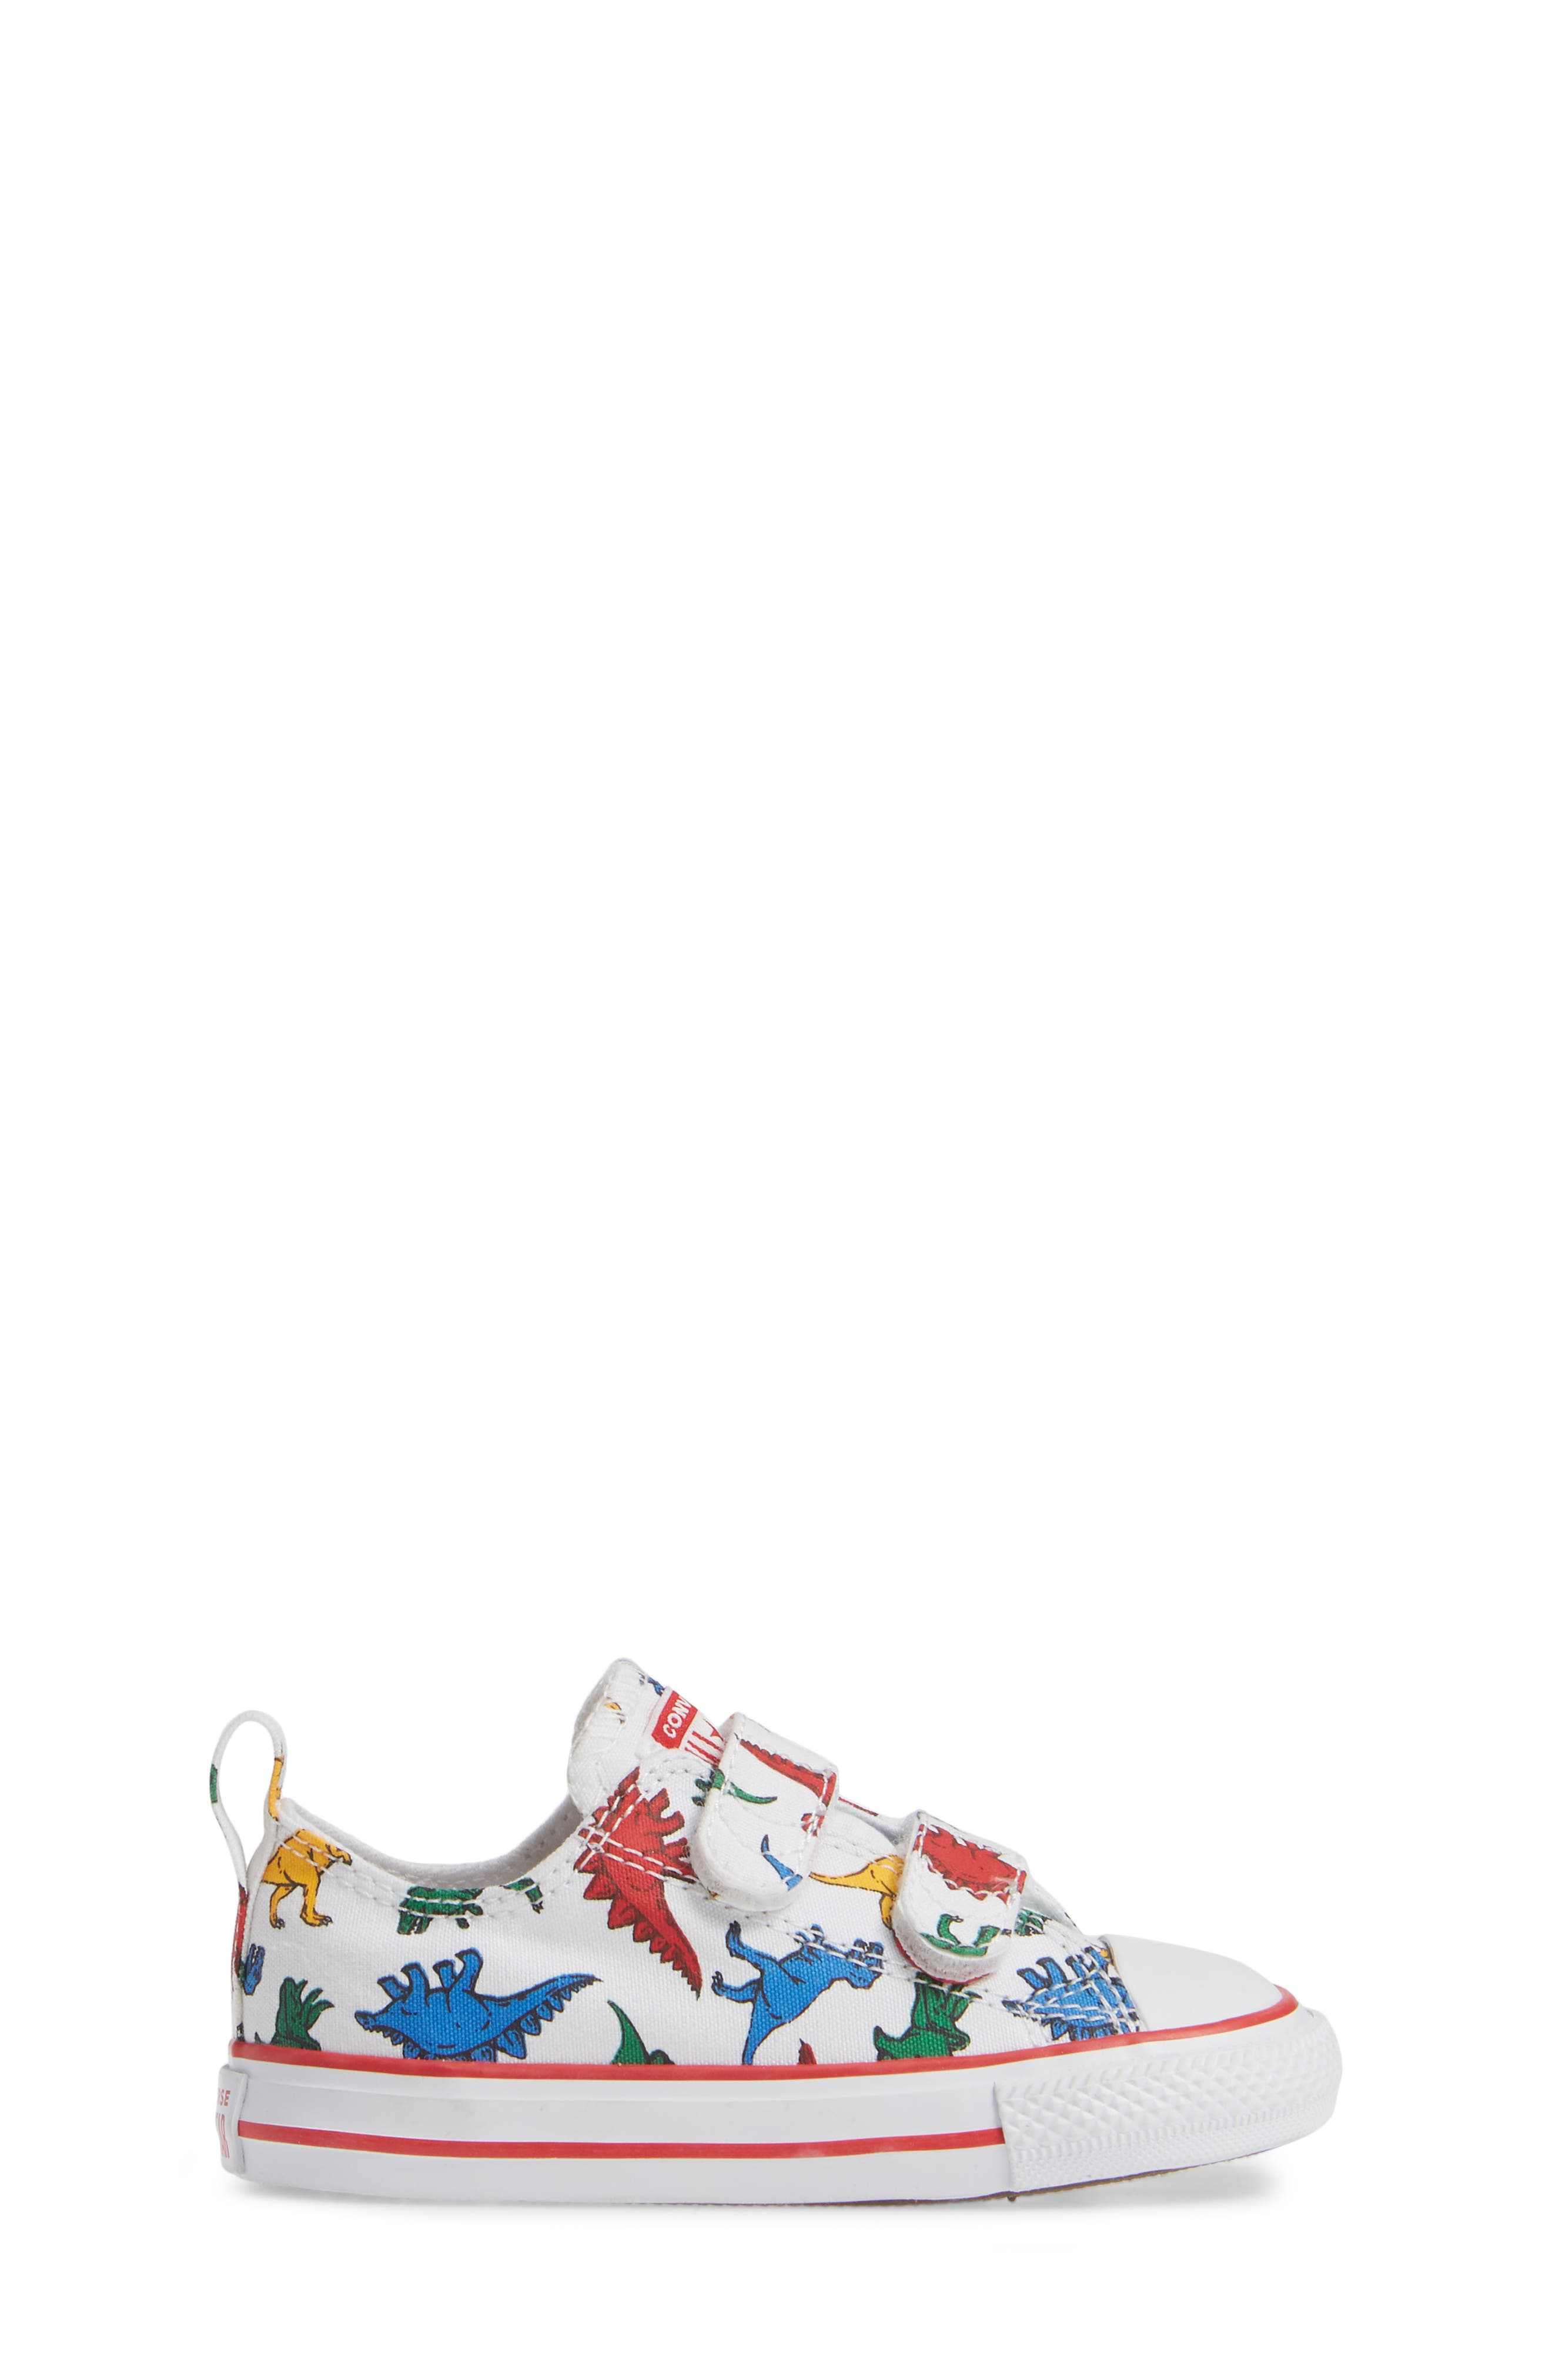 CONVERSE, Chuck Taylor<sup>®</sup> All Star<sup>®</sup> Ox Sneaker, Alternate thumbnail 3, color, WHITE/ ENAMEL RED/ BLUE DINO